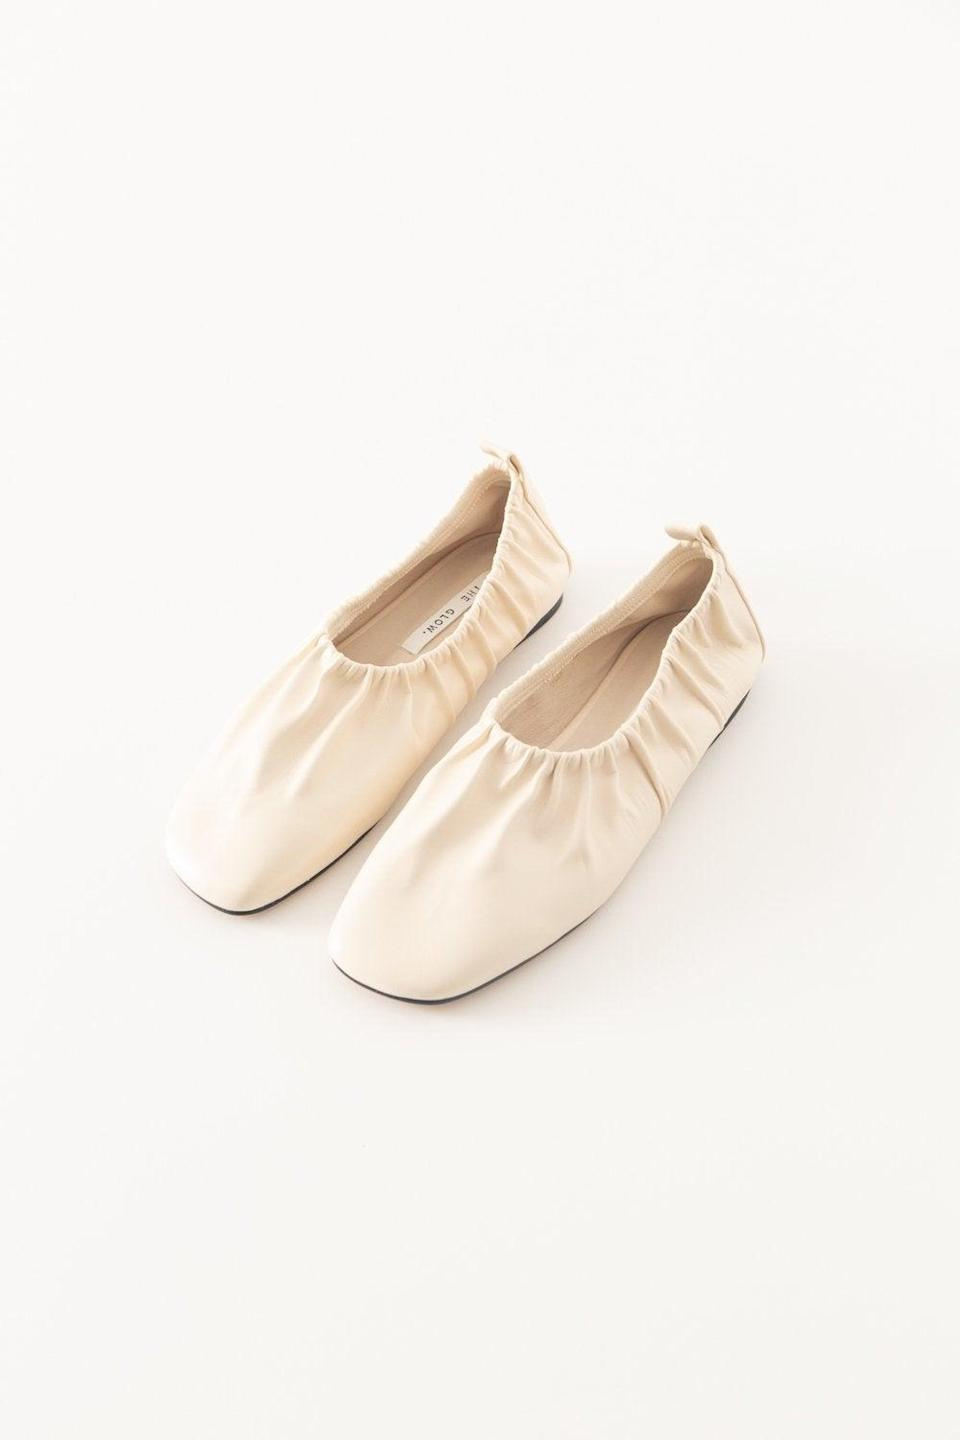 "Because they keep hinting at <a href=""https://www.refinery29.com/en-us/best-ballet-flats"" rel=""nofollow noopener"" target=""_blank"" data-ylk=""slk:the Khaite pair"" class=""link rapid-noclick-resp"">the Khaite pair</a> but you can't spend <a href=""https://www.ssense.com/en-us/women/product/khaite/black-the-ashland-ballerina-flats/5371771"" rel=""nofollow noopener"" target=""_blank"" data-ylk=""slk:$660"" class=""link rapid-noclick-resp"">$660</a> on a holiday gift. <br><br><strong>Pêche</strong> Lea Flats, $, available at <a href=""https://go.skimresources.com/?id=30283X879131&url=https%3A%2F%2Fshop-peche.com%2Fcollections%2Fshoes%2Fproducts%2Flea"" rel=""nofollow noopener"" target=""_blank"" data-ylk=""slk:Pêche"" class=""link rapid-noclick-resp"">Pêche</a>"